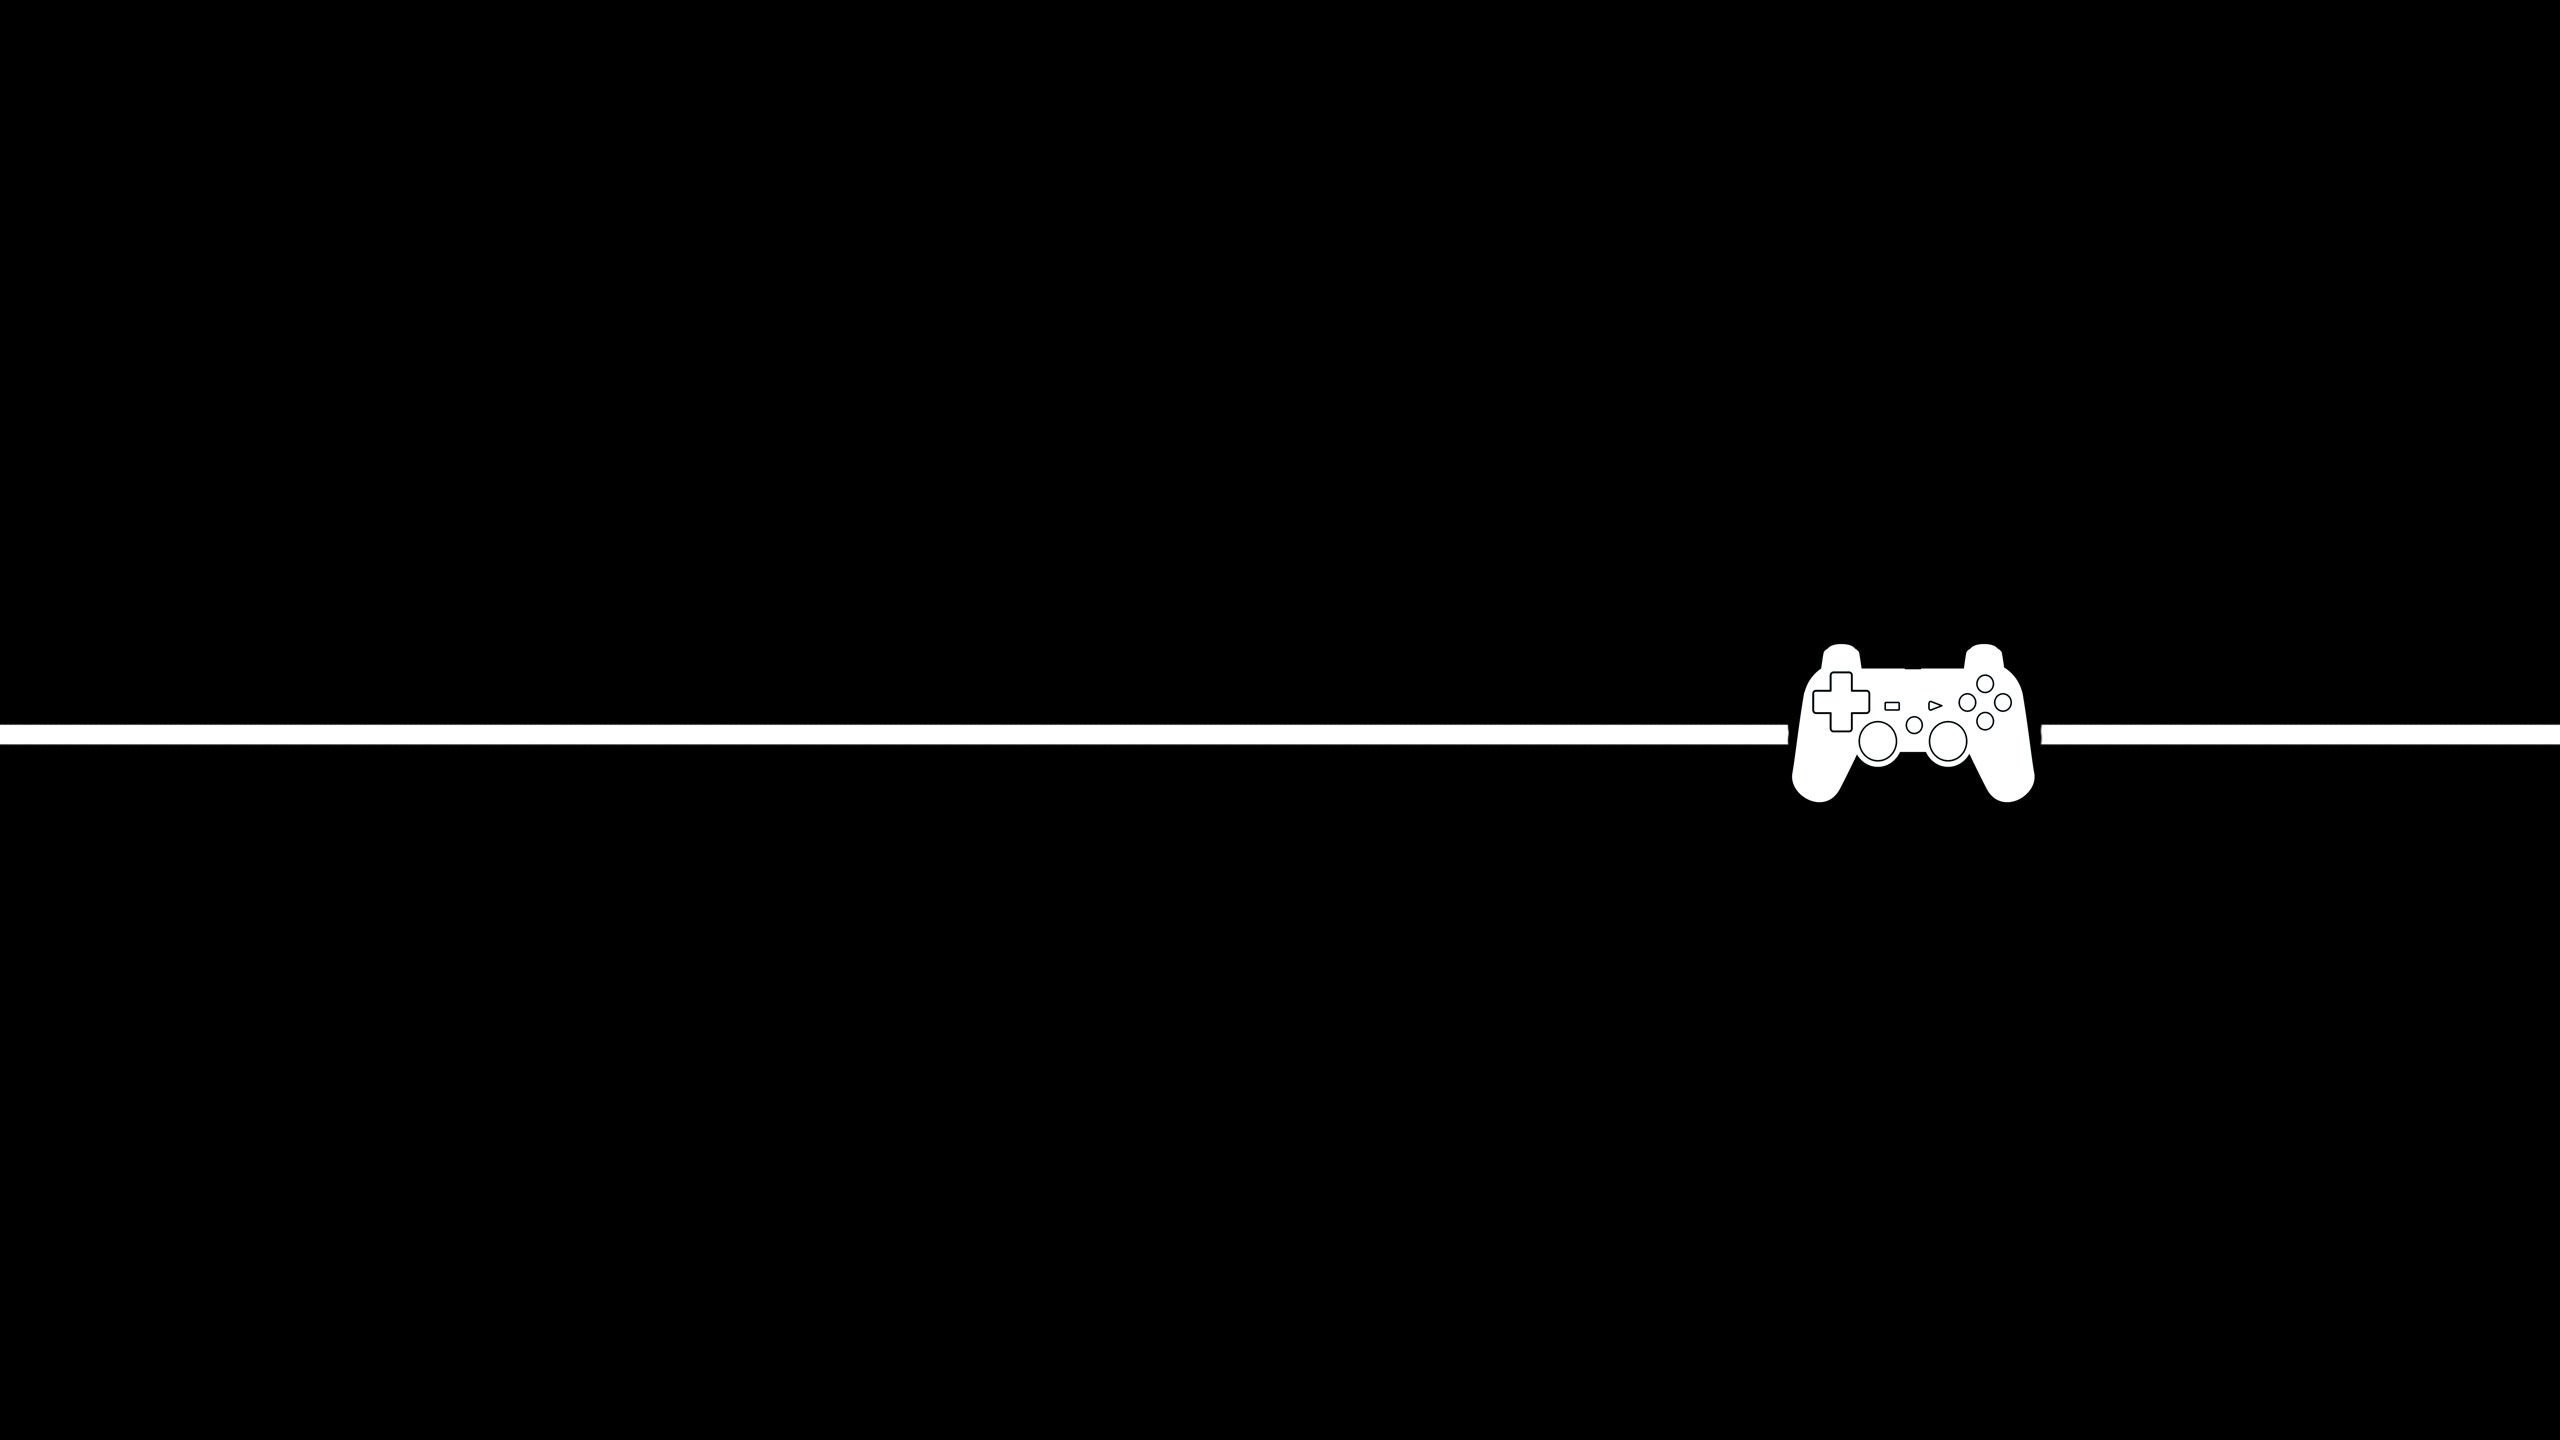 2560x1440 Wallpapers Gaming 86 Background Pictures